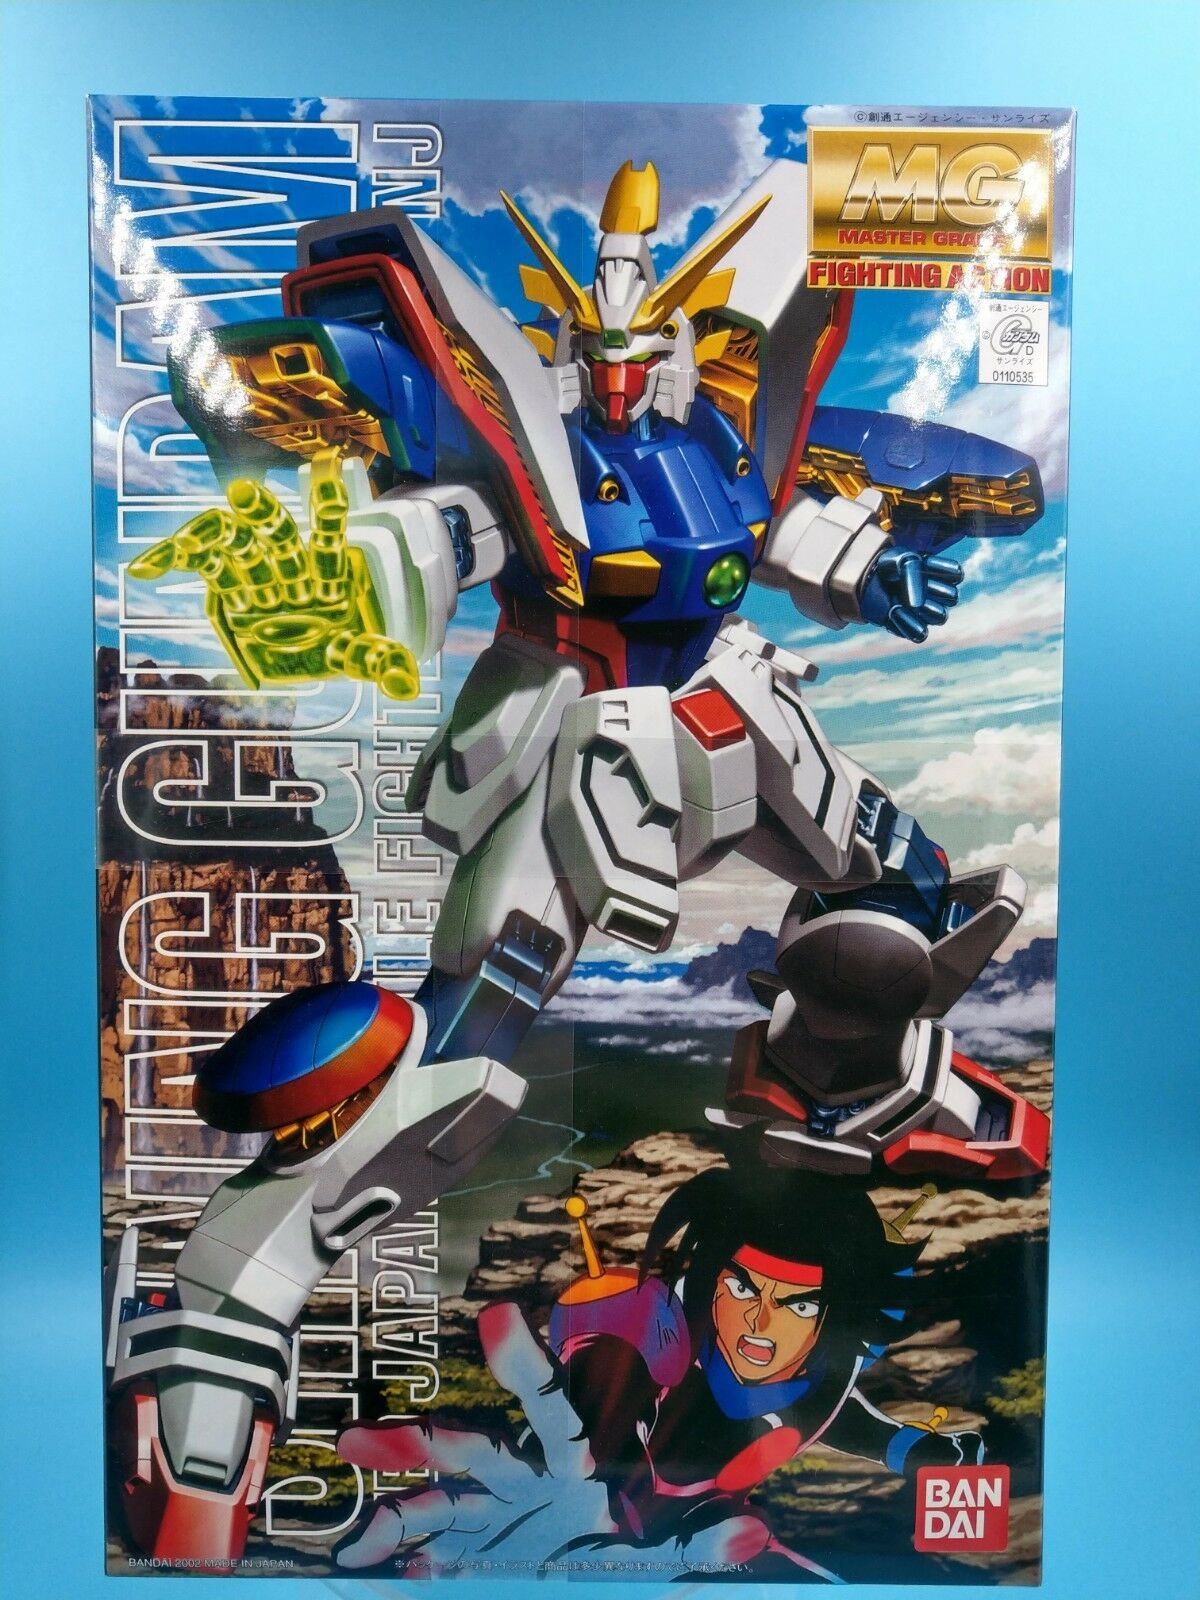 Figurine new japanese shining shining shining gundam neo japan mobil fighter GF13-017NJ 929f90